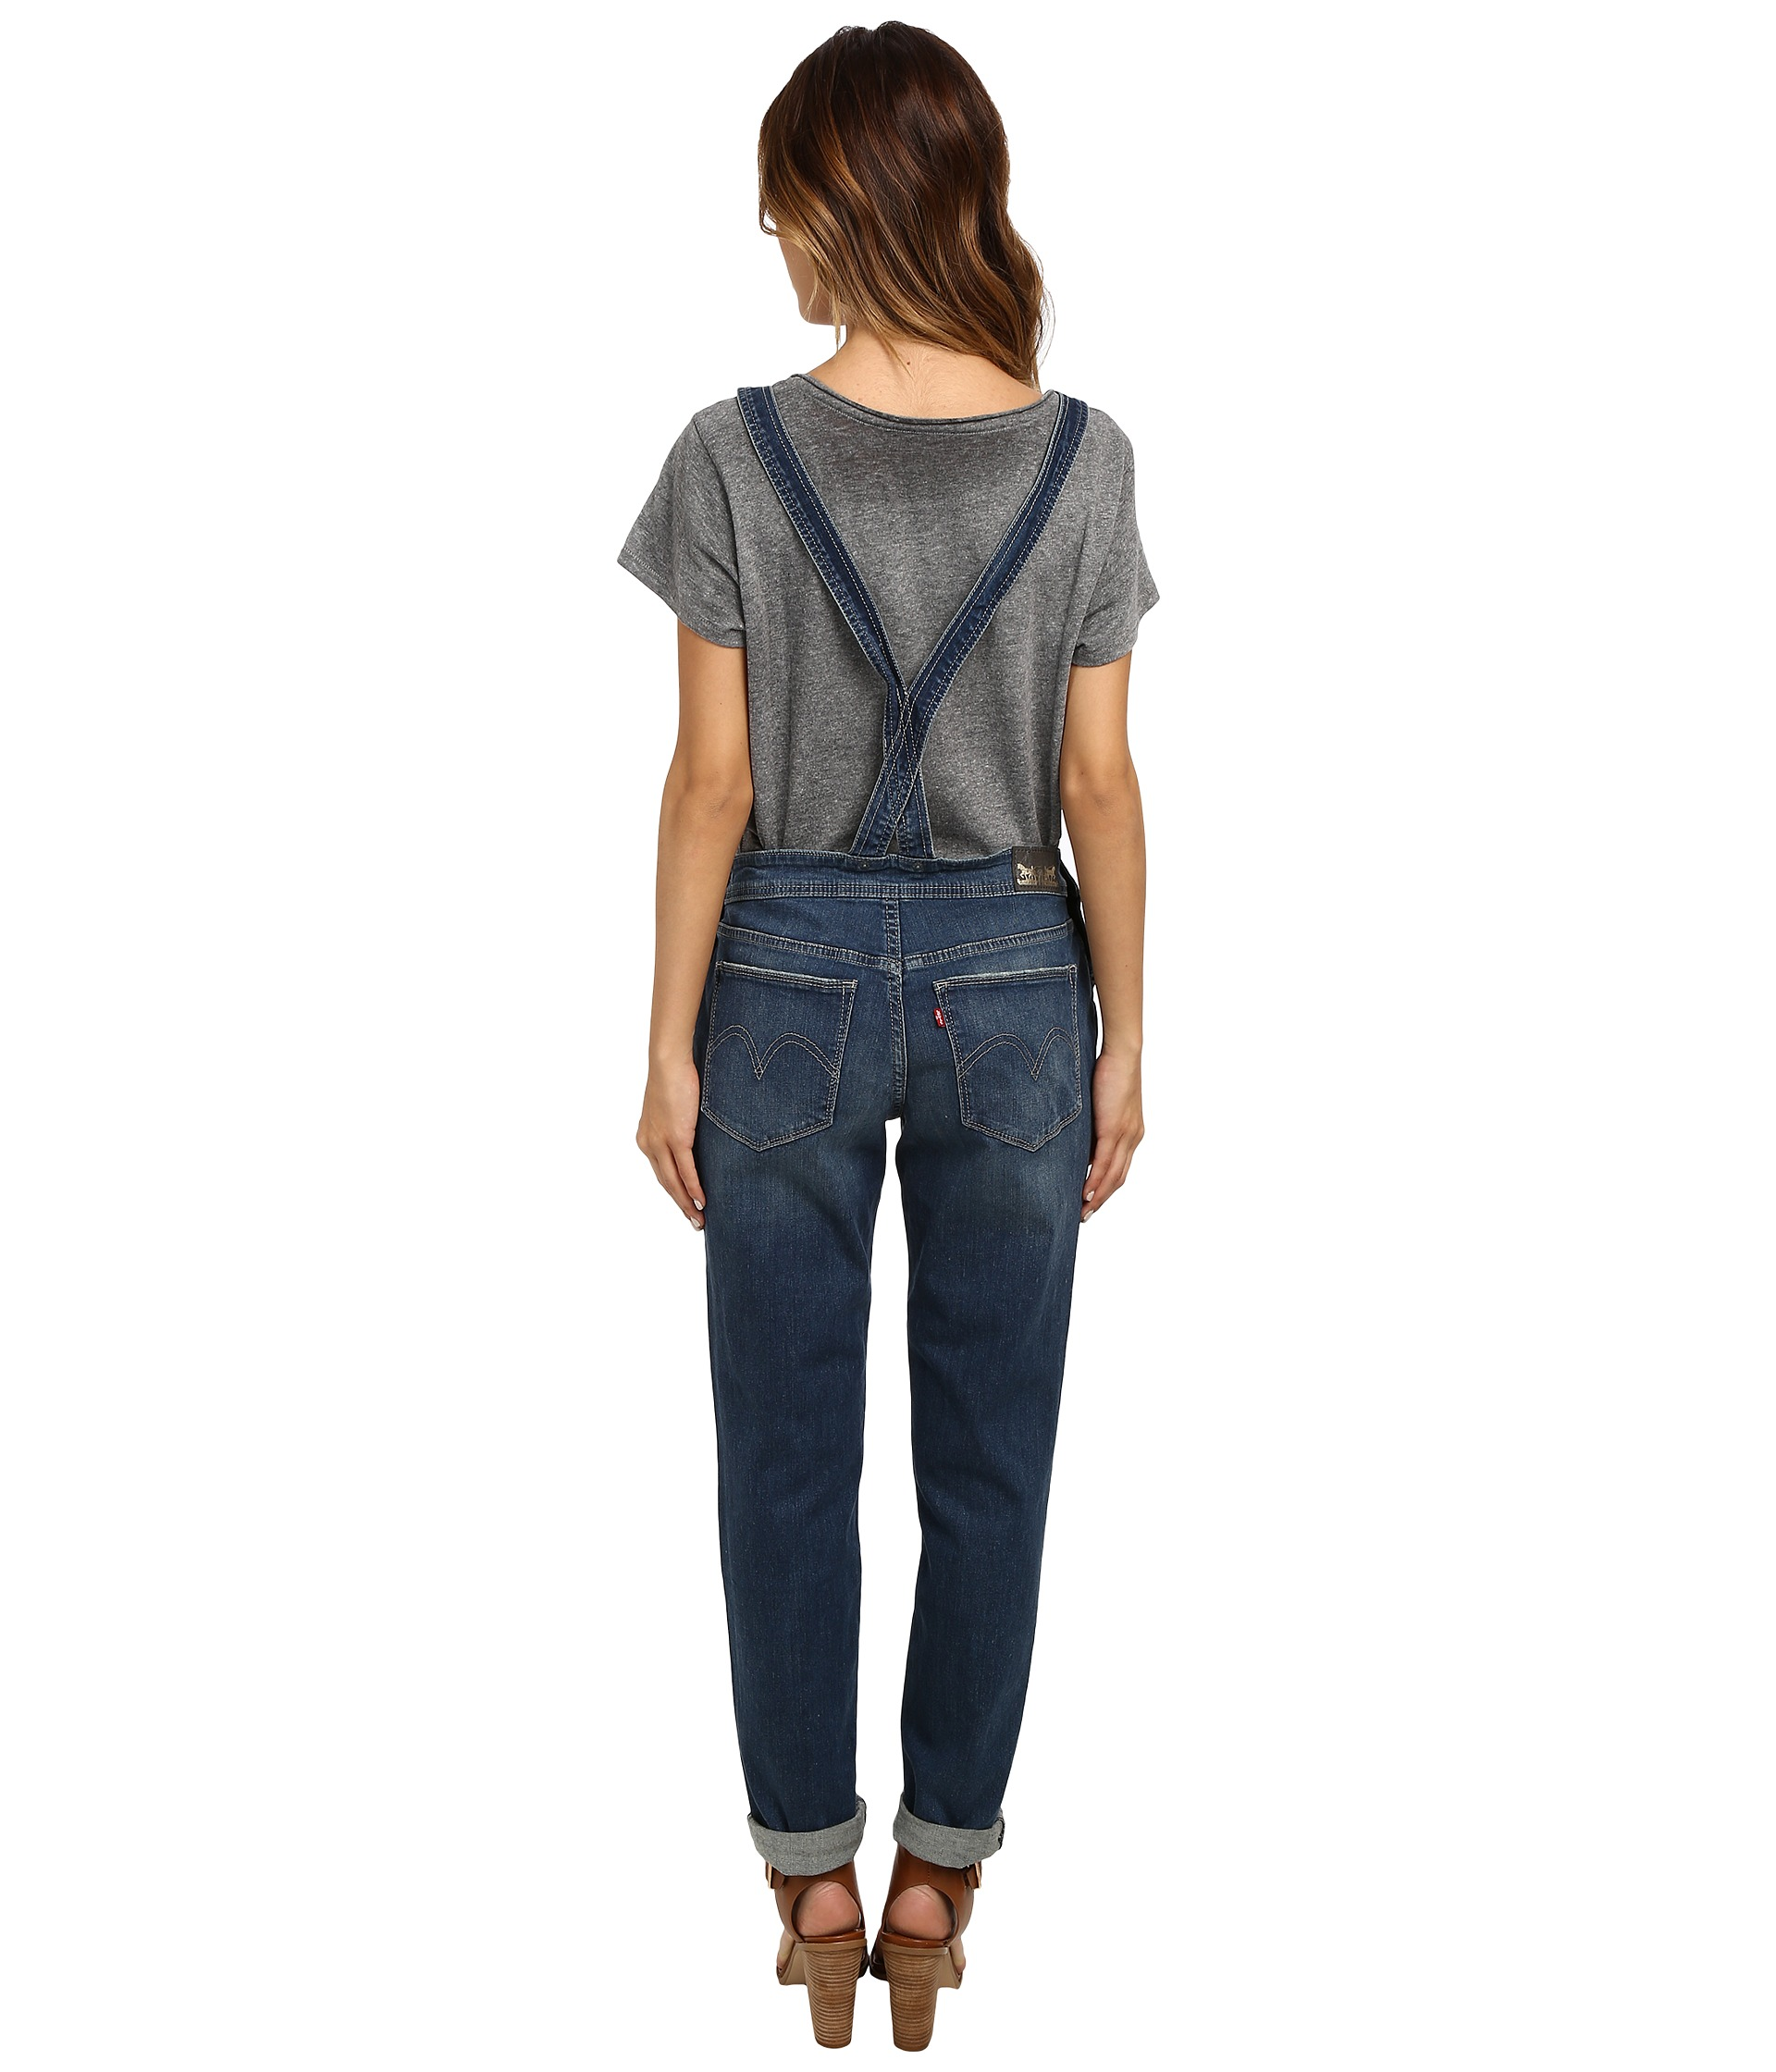 Shop Levi's Women's Jeans - Overalls at up to 70% off! Get the lowest price on your favorite brands at Poshmark. Poshmark makes shopping fun, affordable & easy!